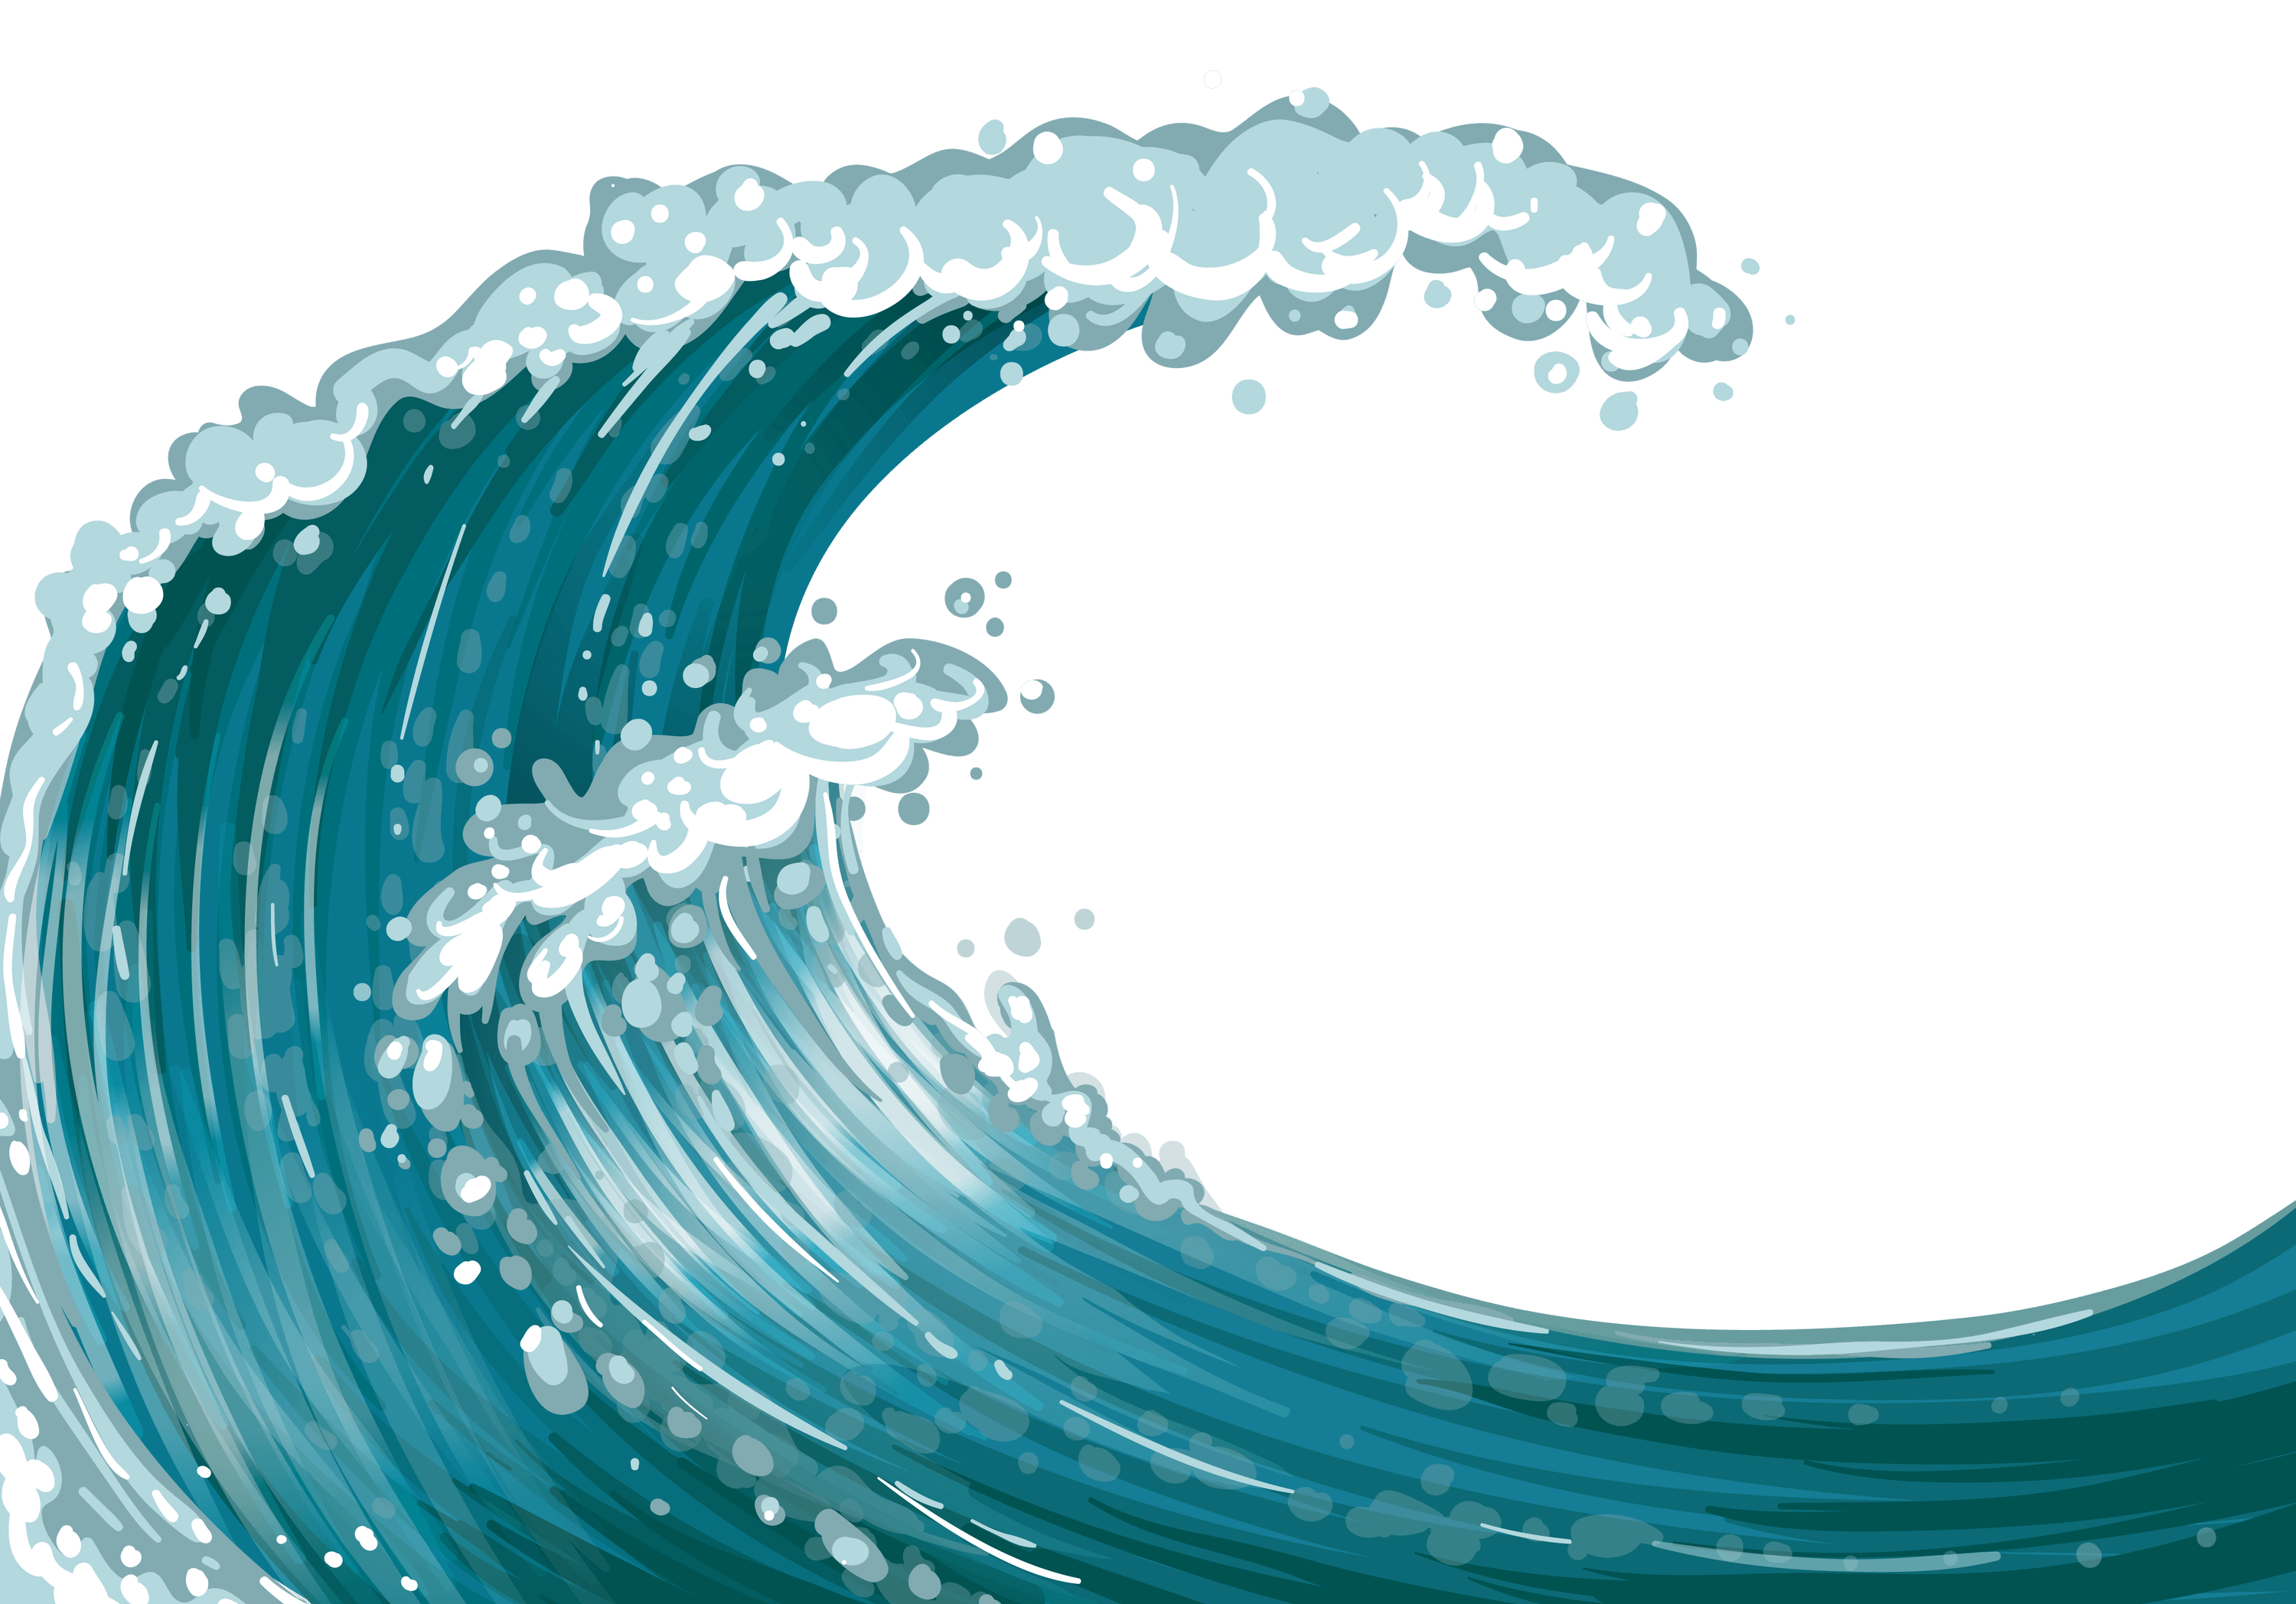 Ocean waves png. Wave photos sea